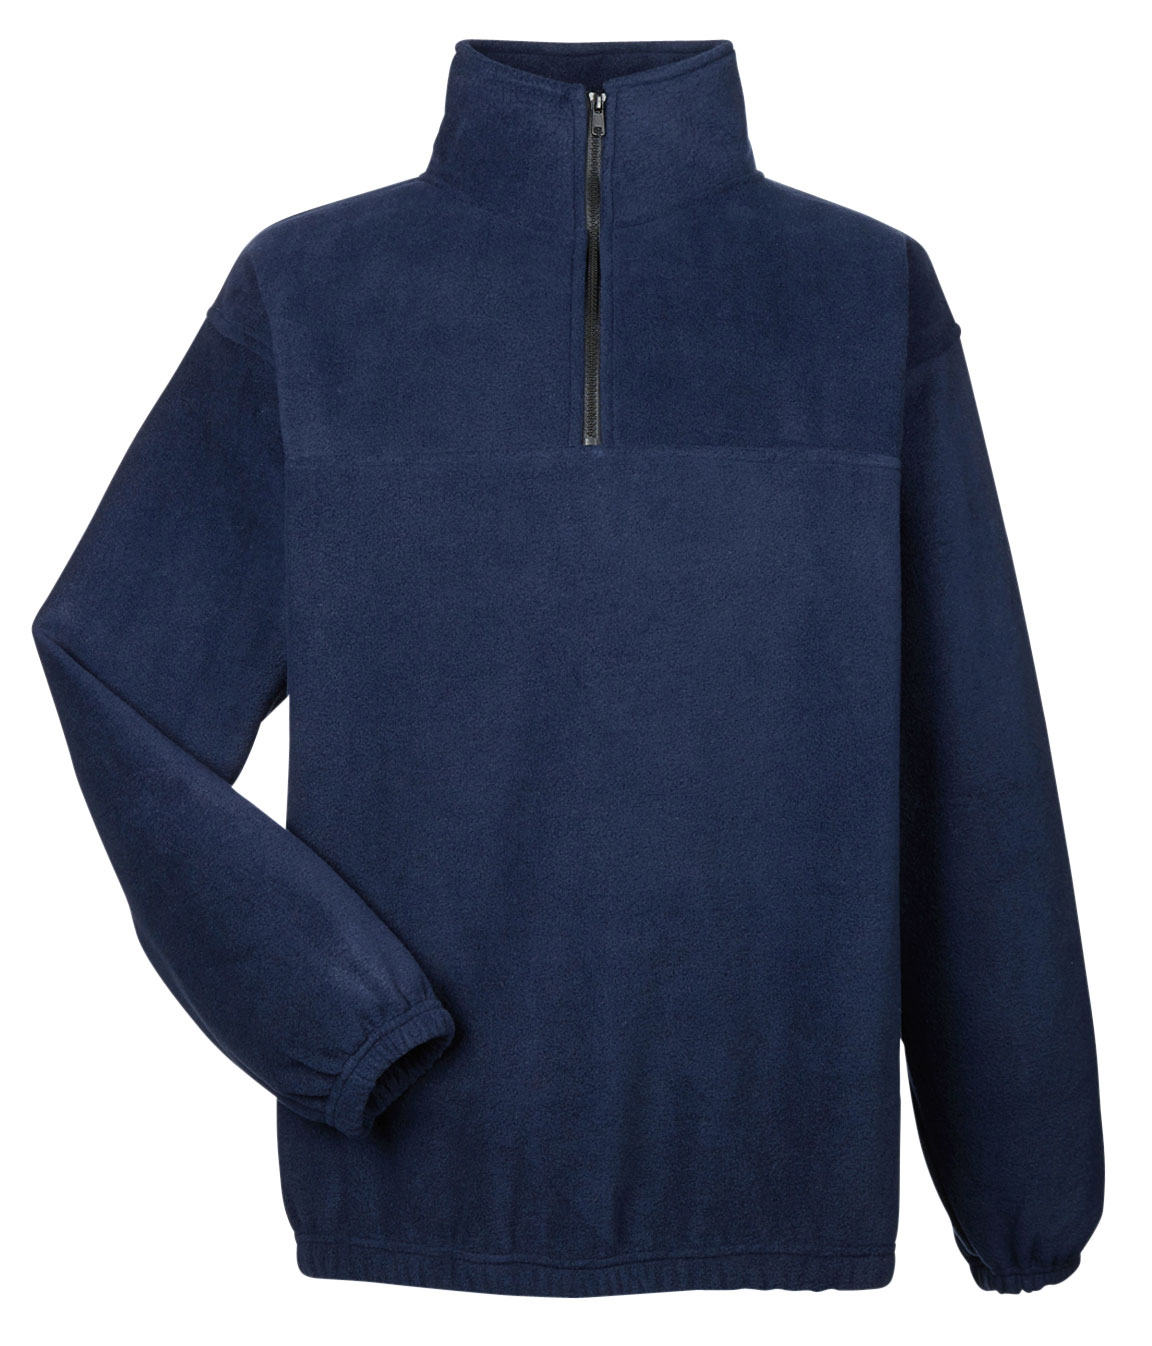 UltraClub Adult Iceberg Fleece 1/4 Zip Pullover